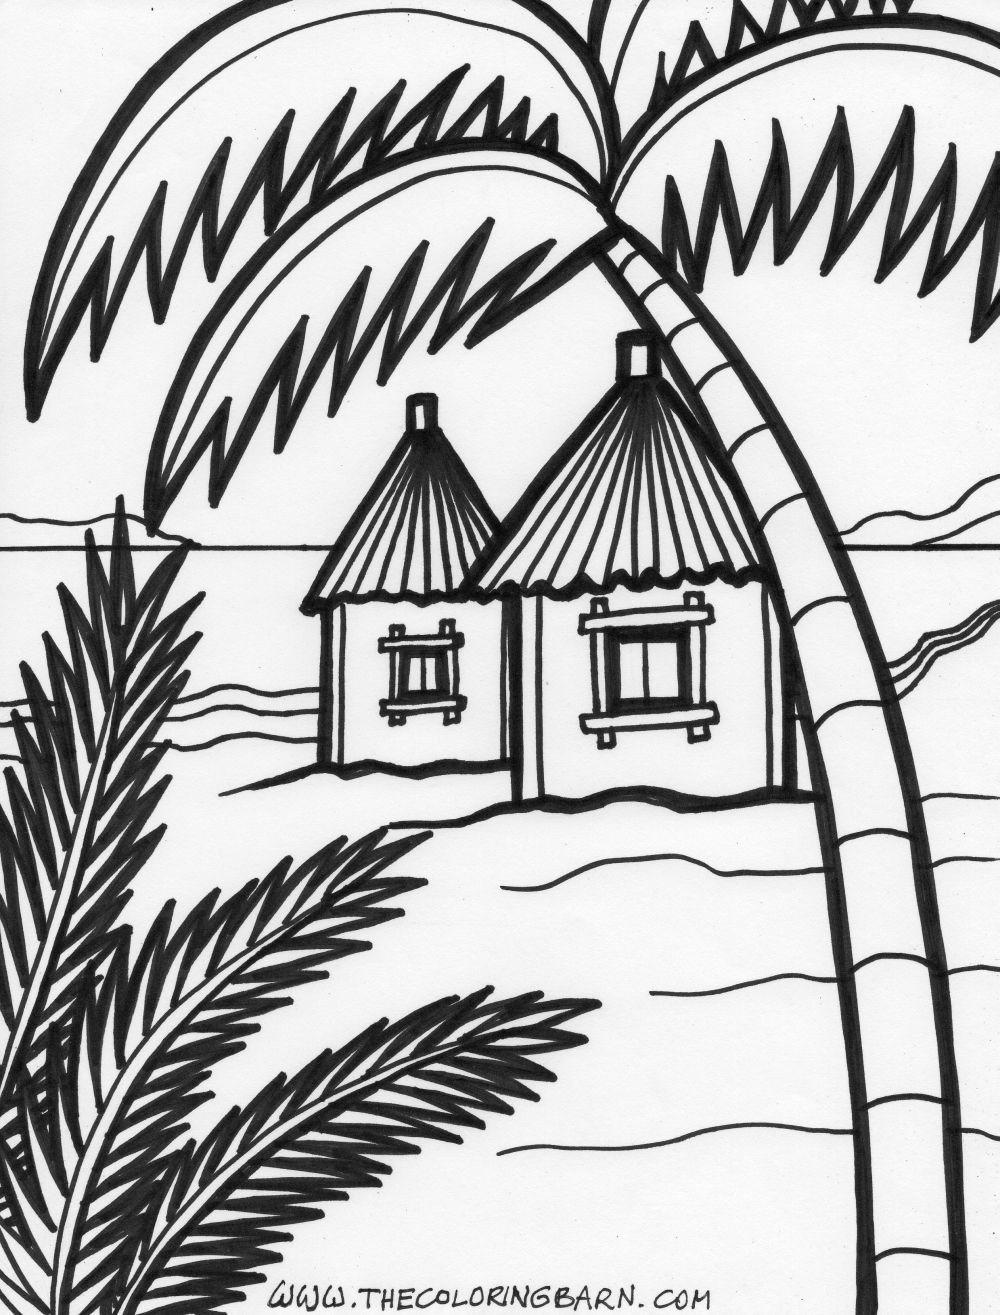 Hut Drawing At Getdrawings Com Free For Personal Use Hut Drawing